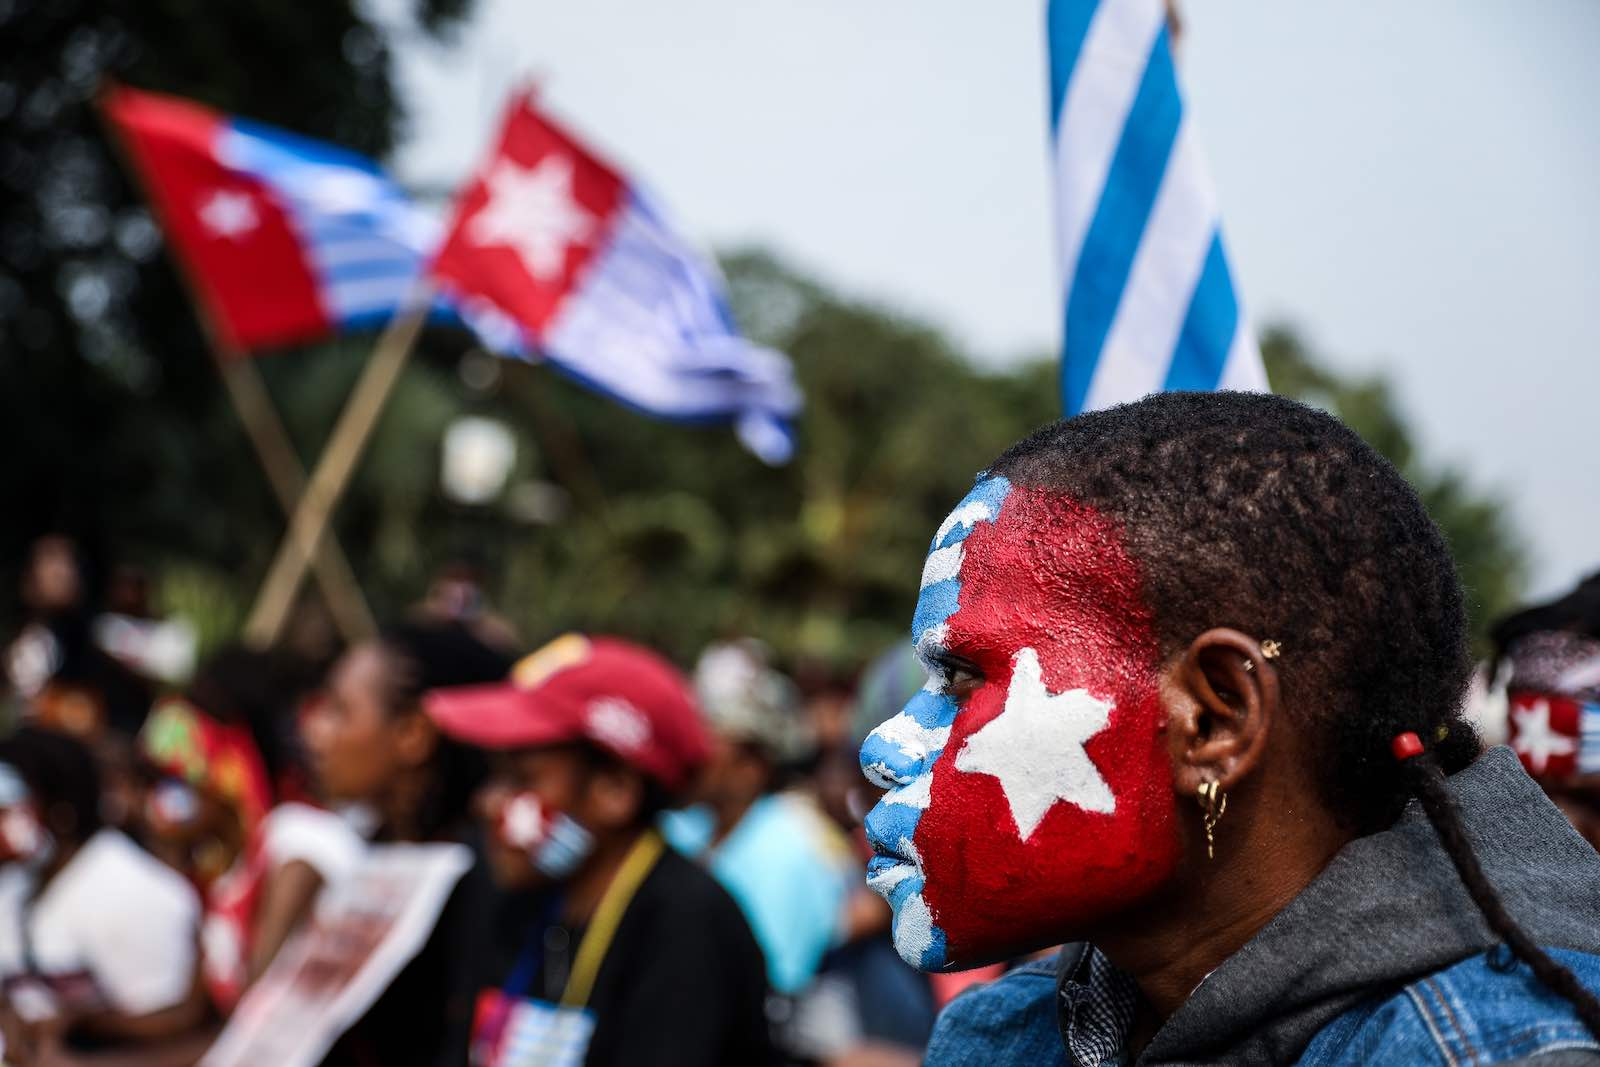 A woman with her face painted with the flag of West Papua, at a rally in Jakarta, Indonesia, 28 August 2019 (Andrew Gal/NurPhoto via Getty Images)